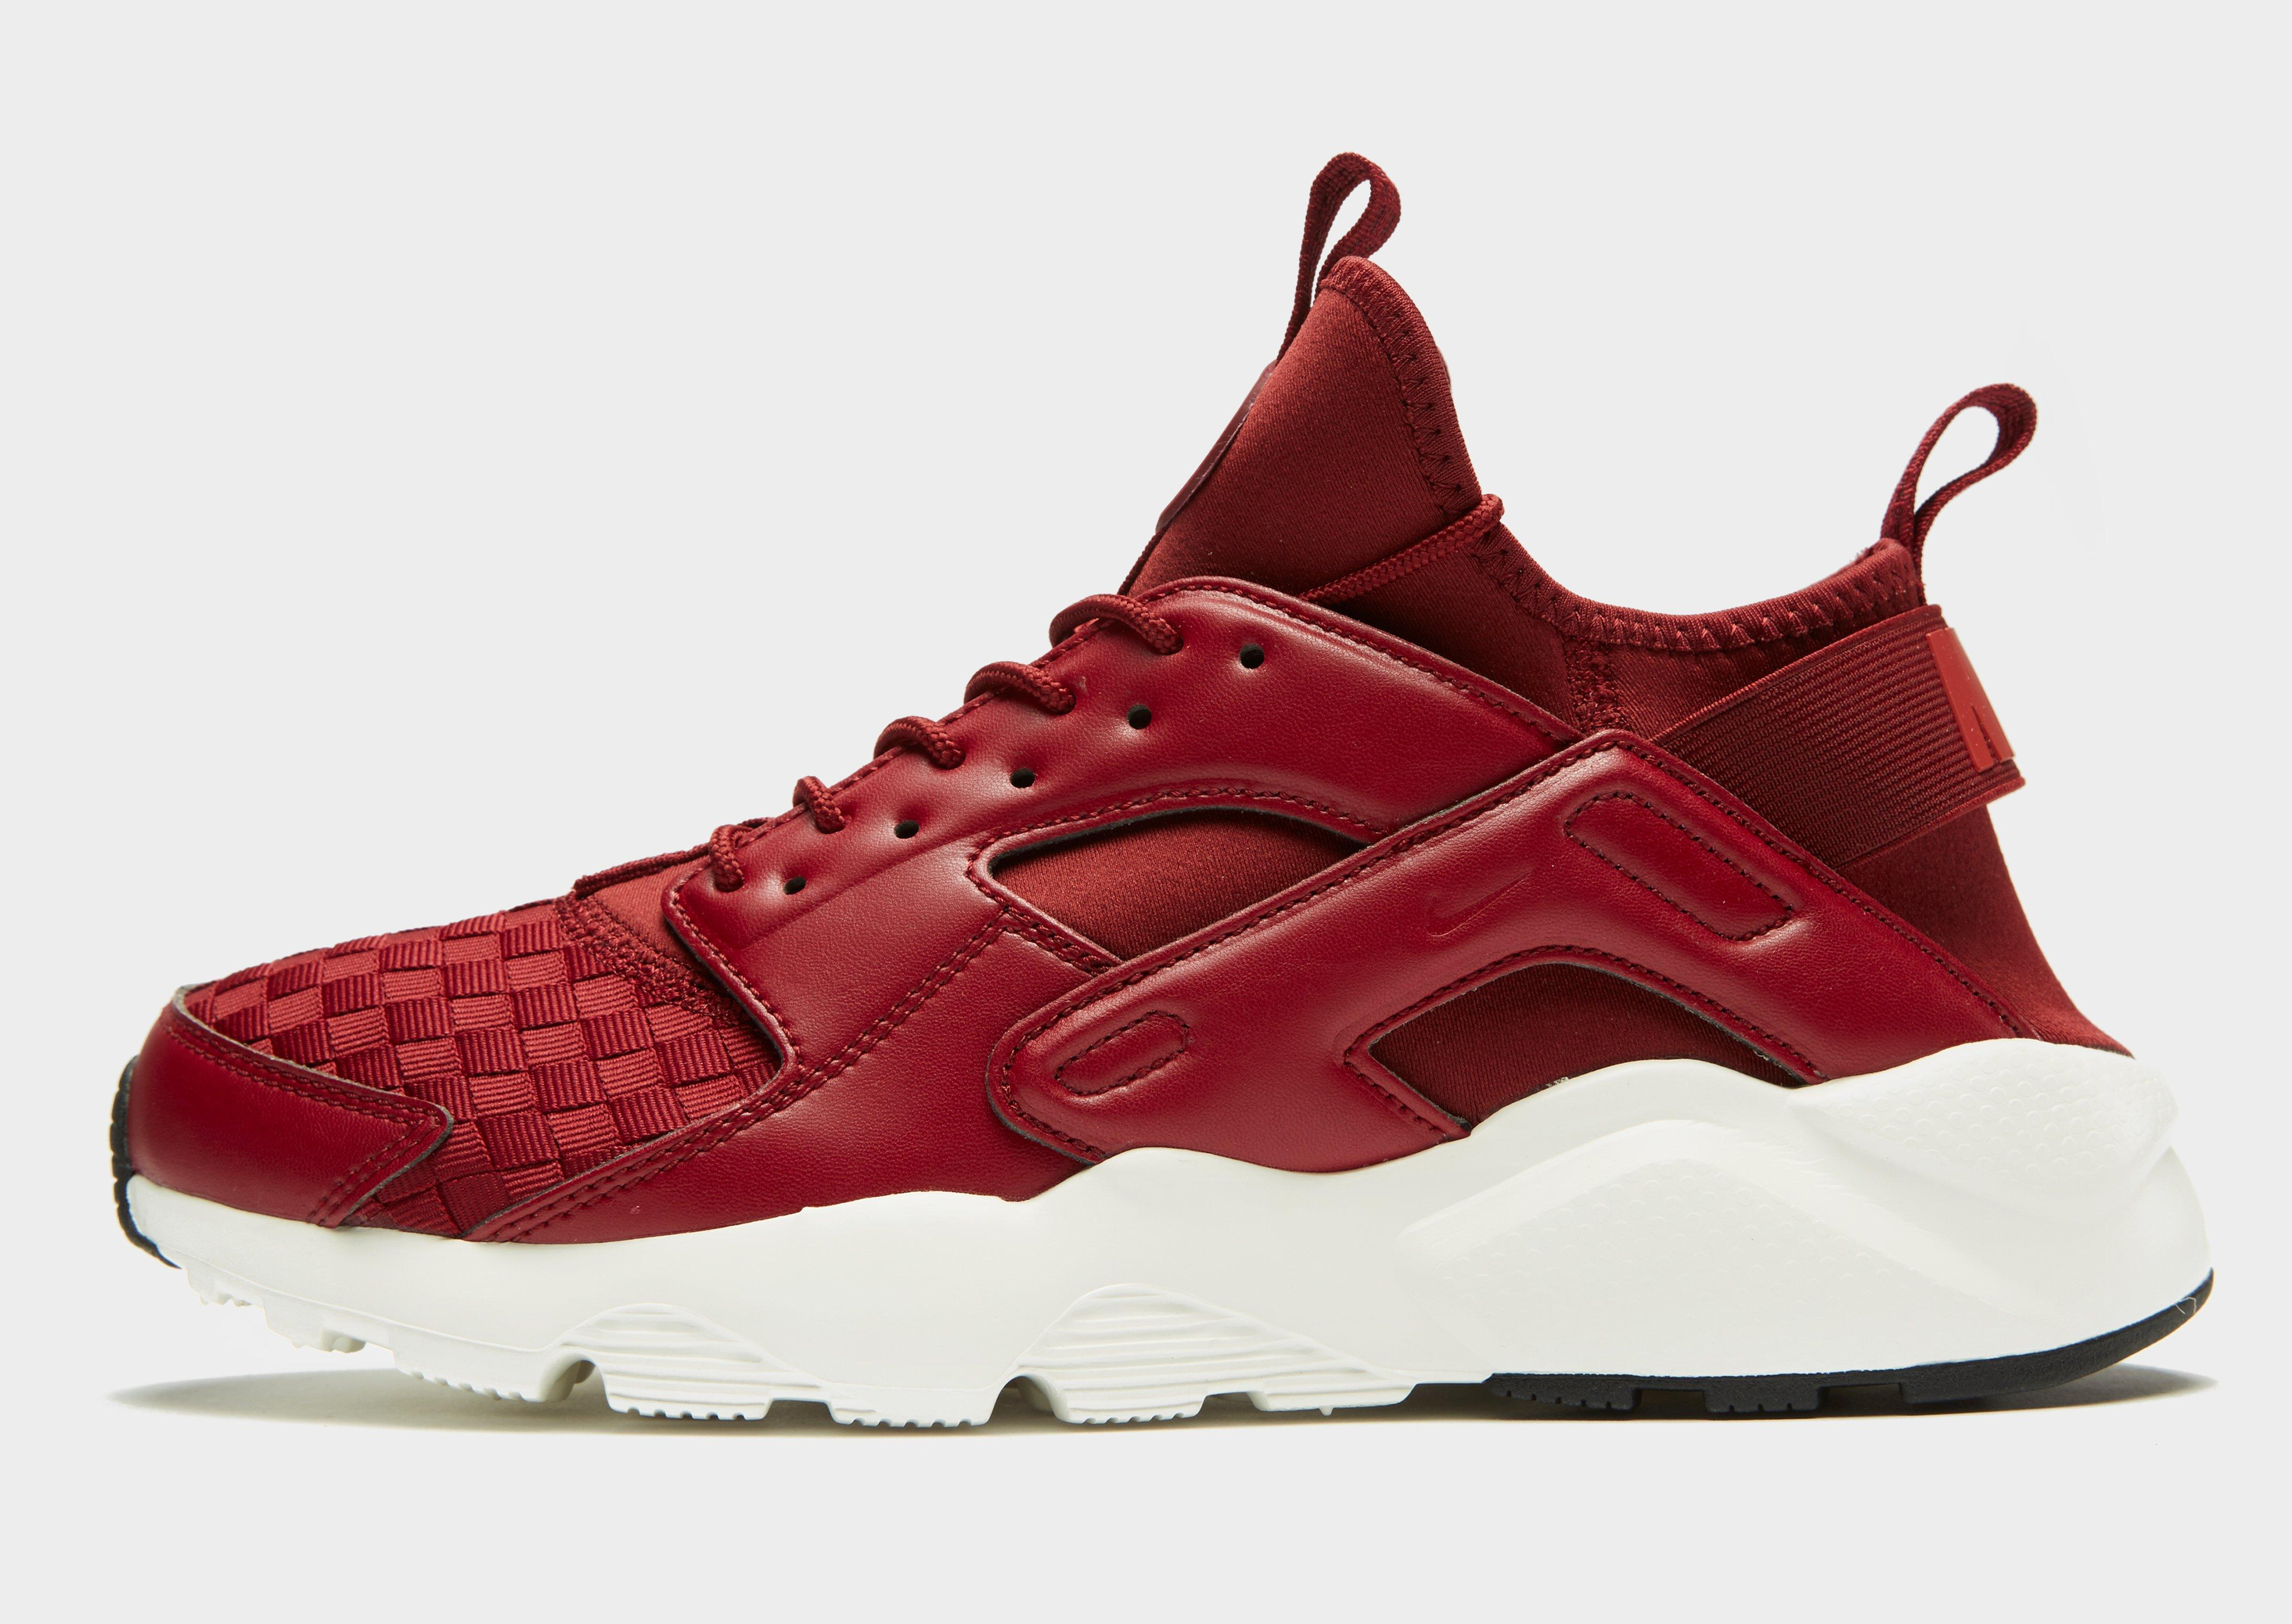 bd4aeee8128d Gallery. Previously sold at  JD Sports · Men s Nike Huarache